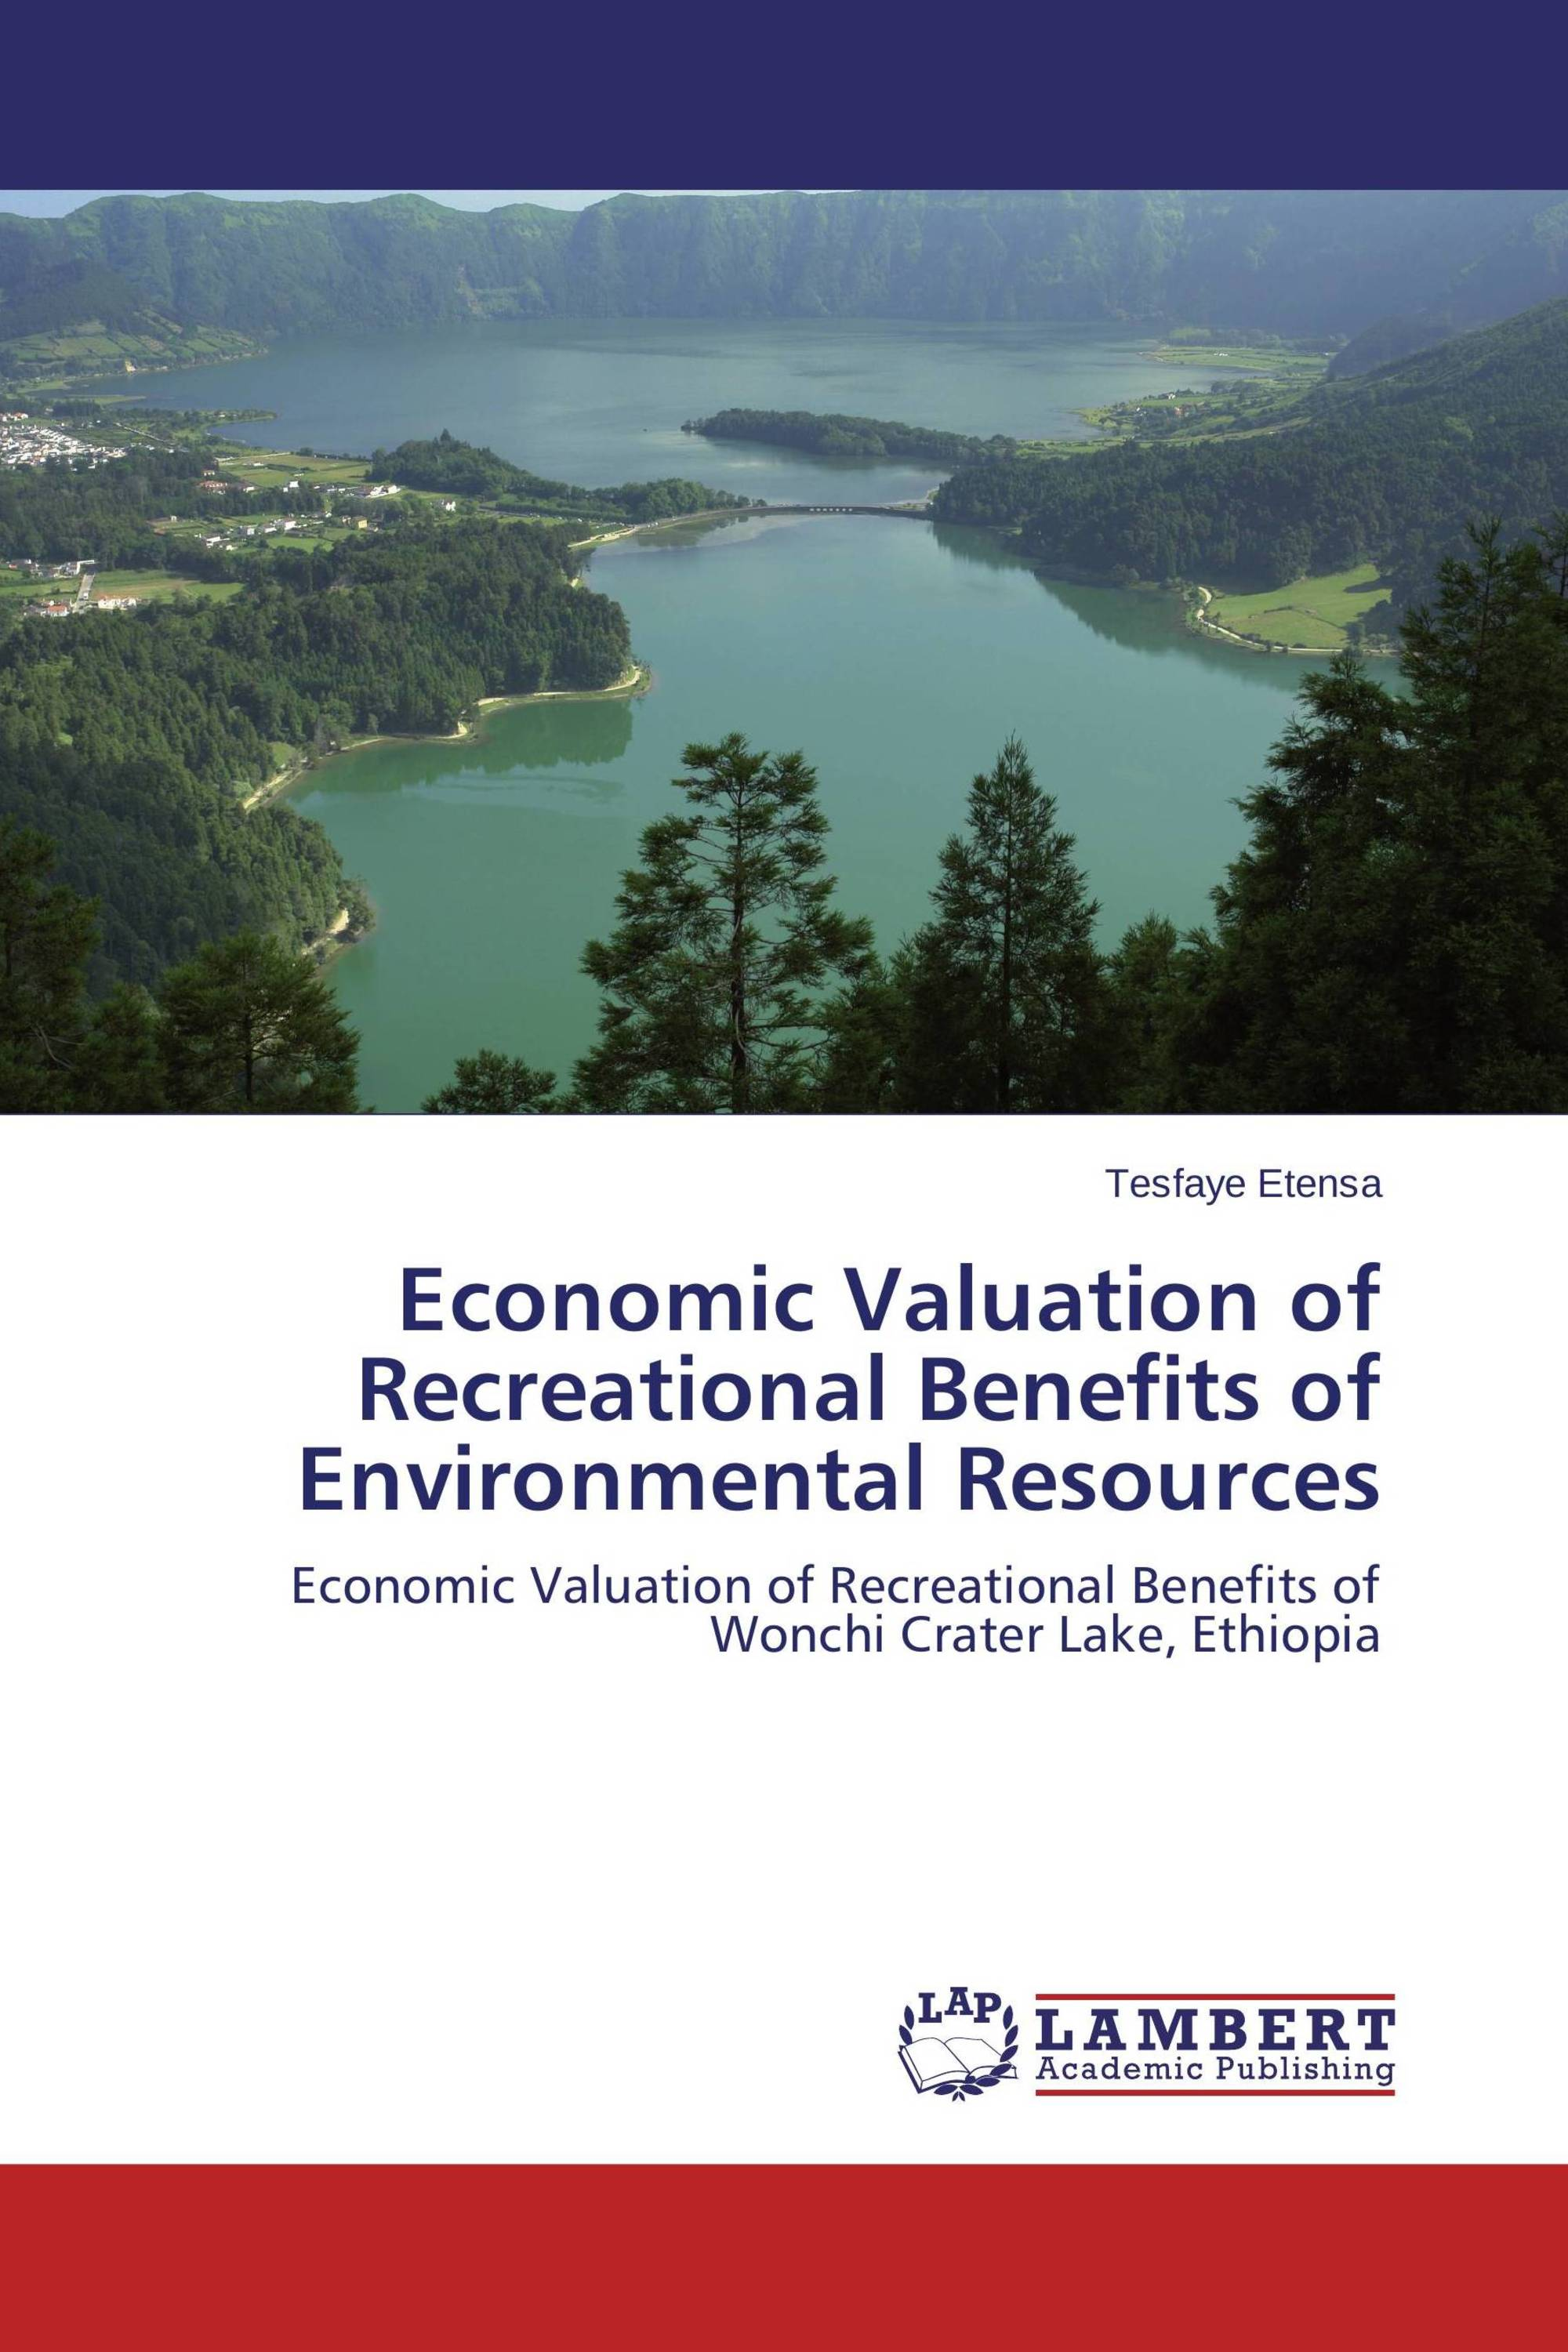 Economic Valuation of Recreational Benefits of Environmental Resources